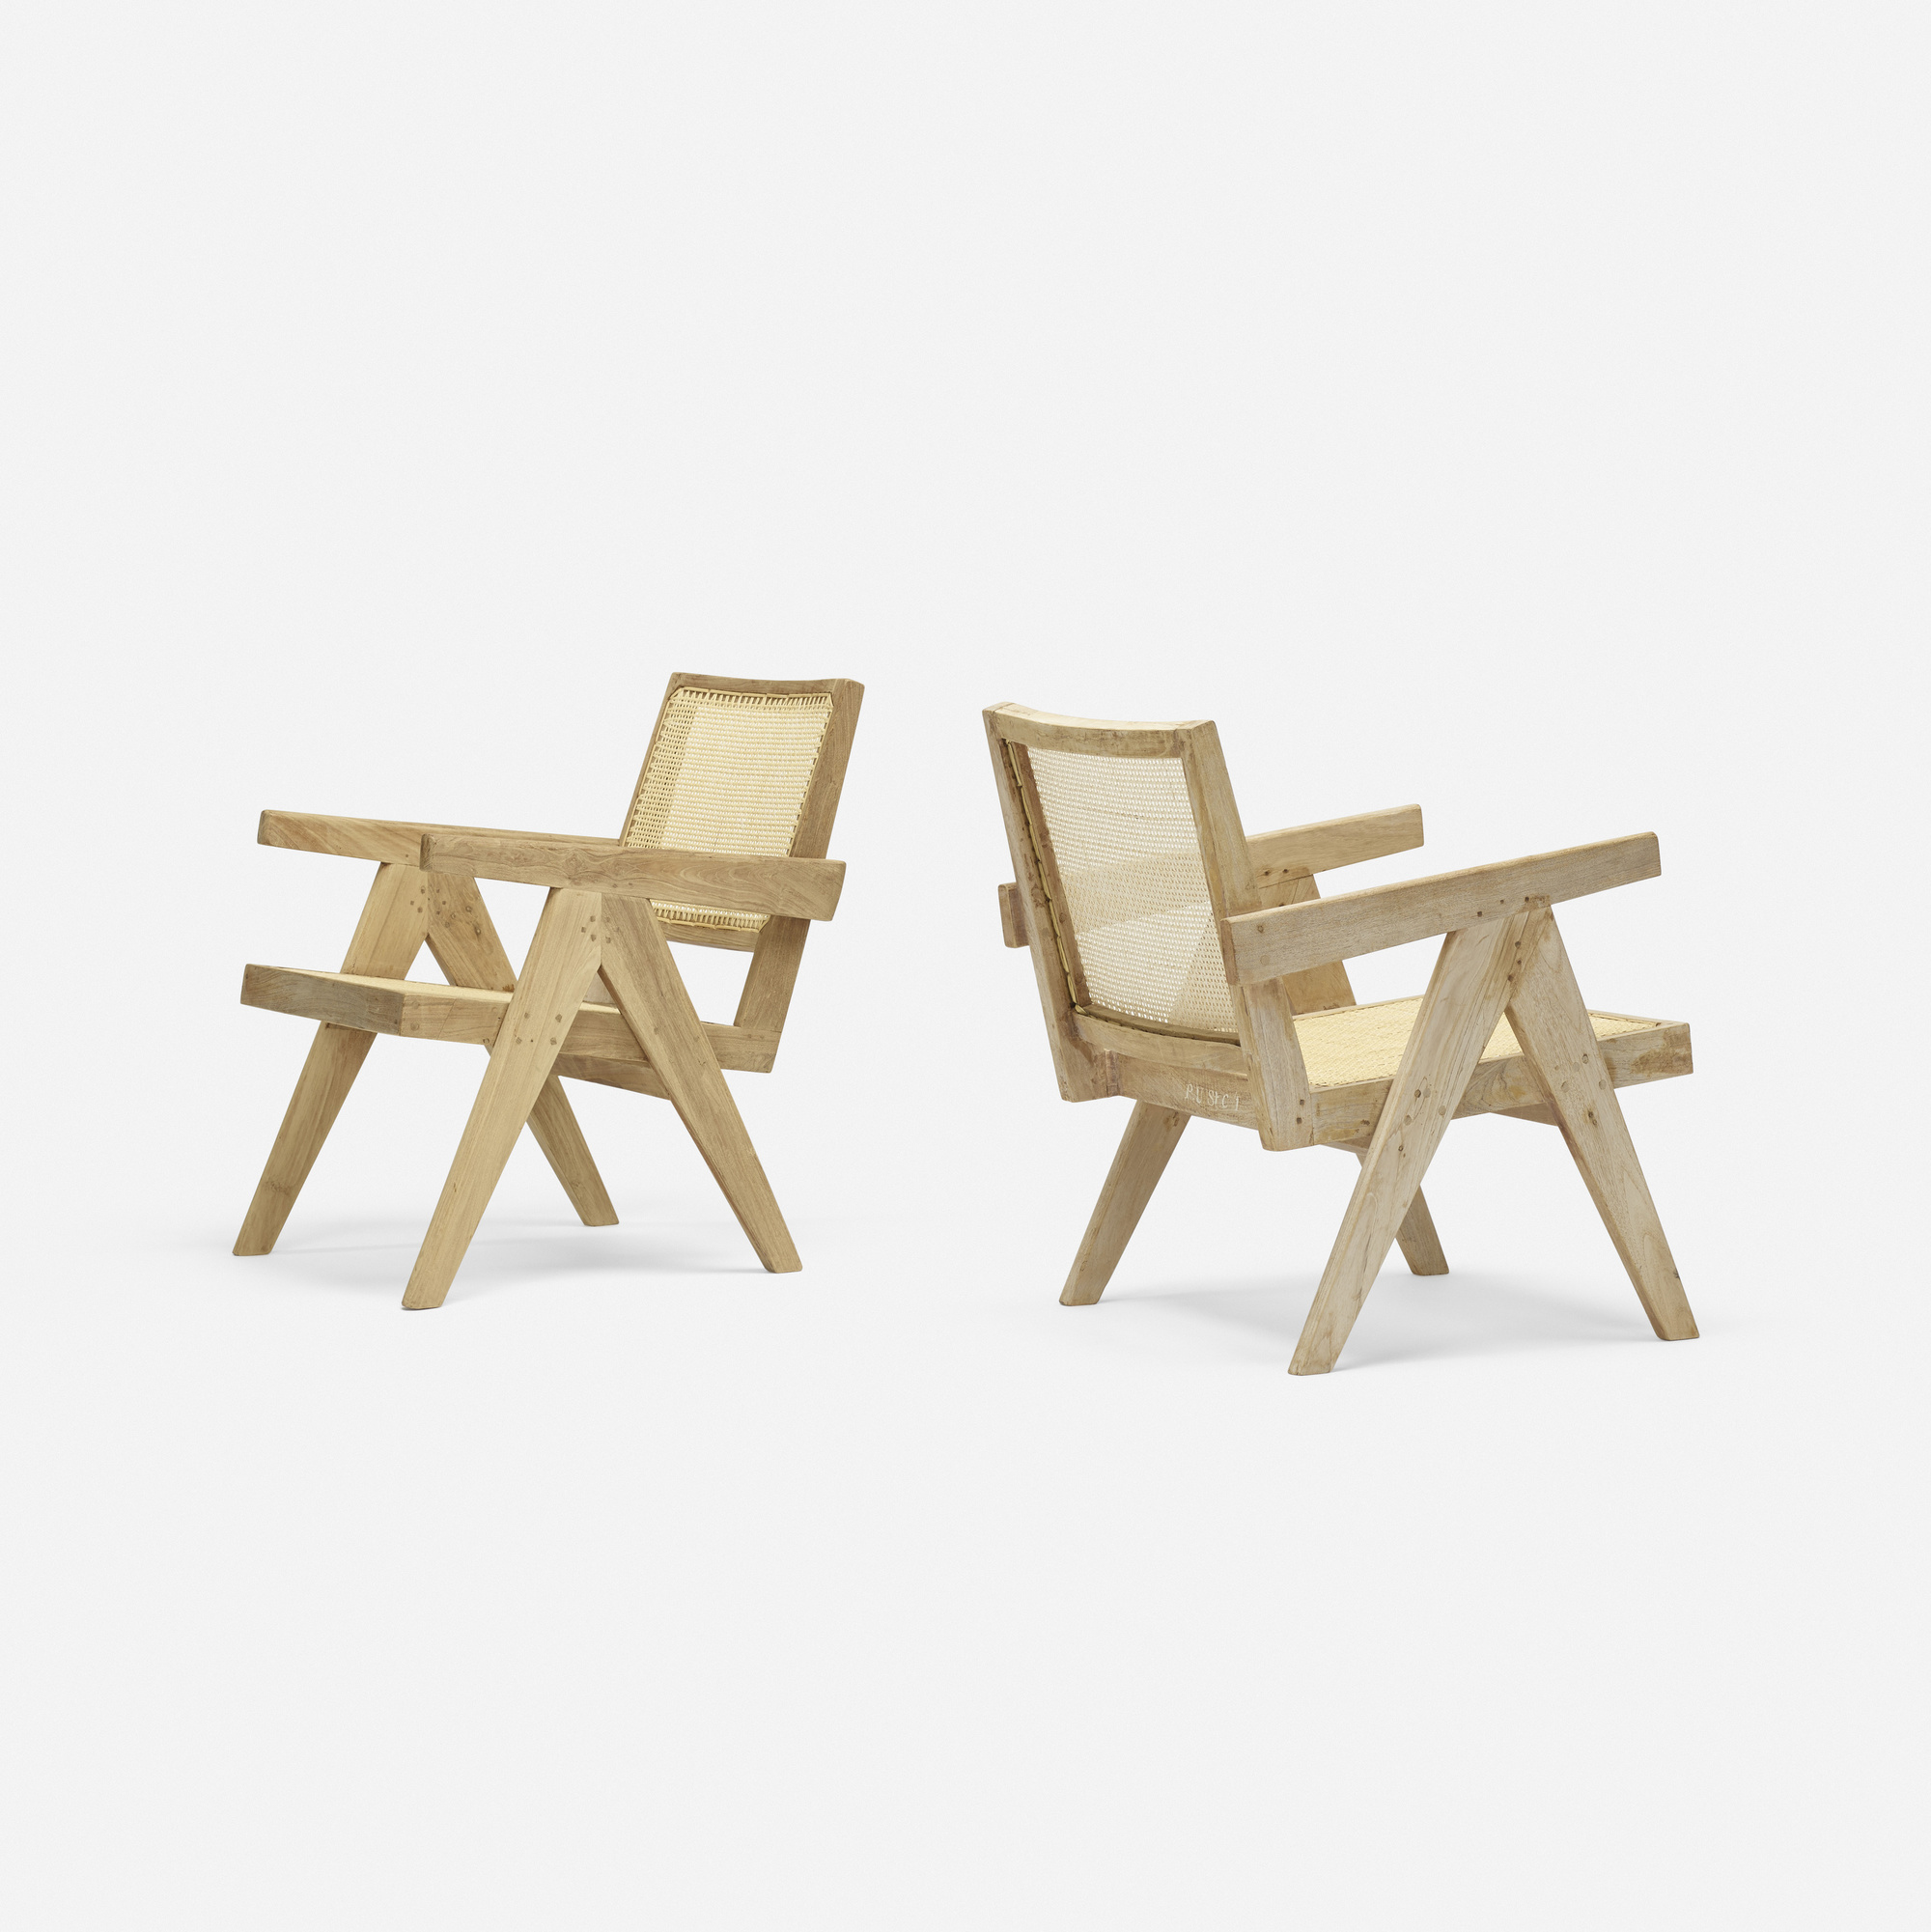 113: Pierre Jeanneret / Easy armchairs from Chandigarh, set of two (1 of 4)